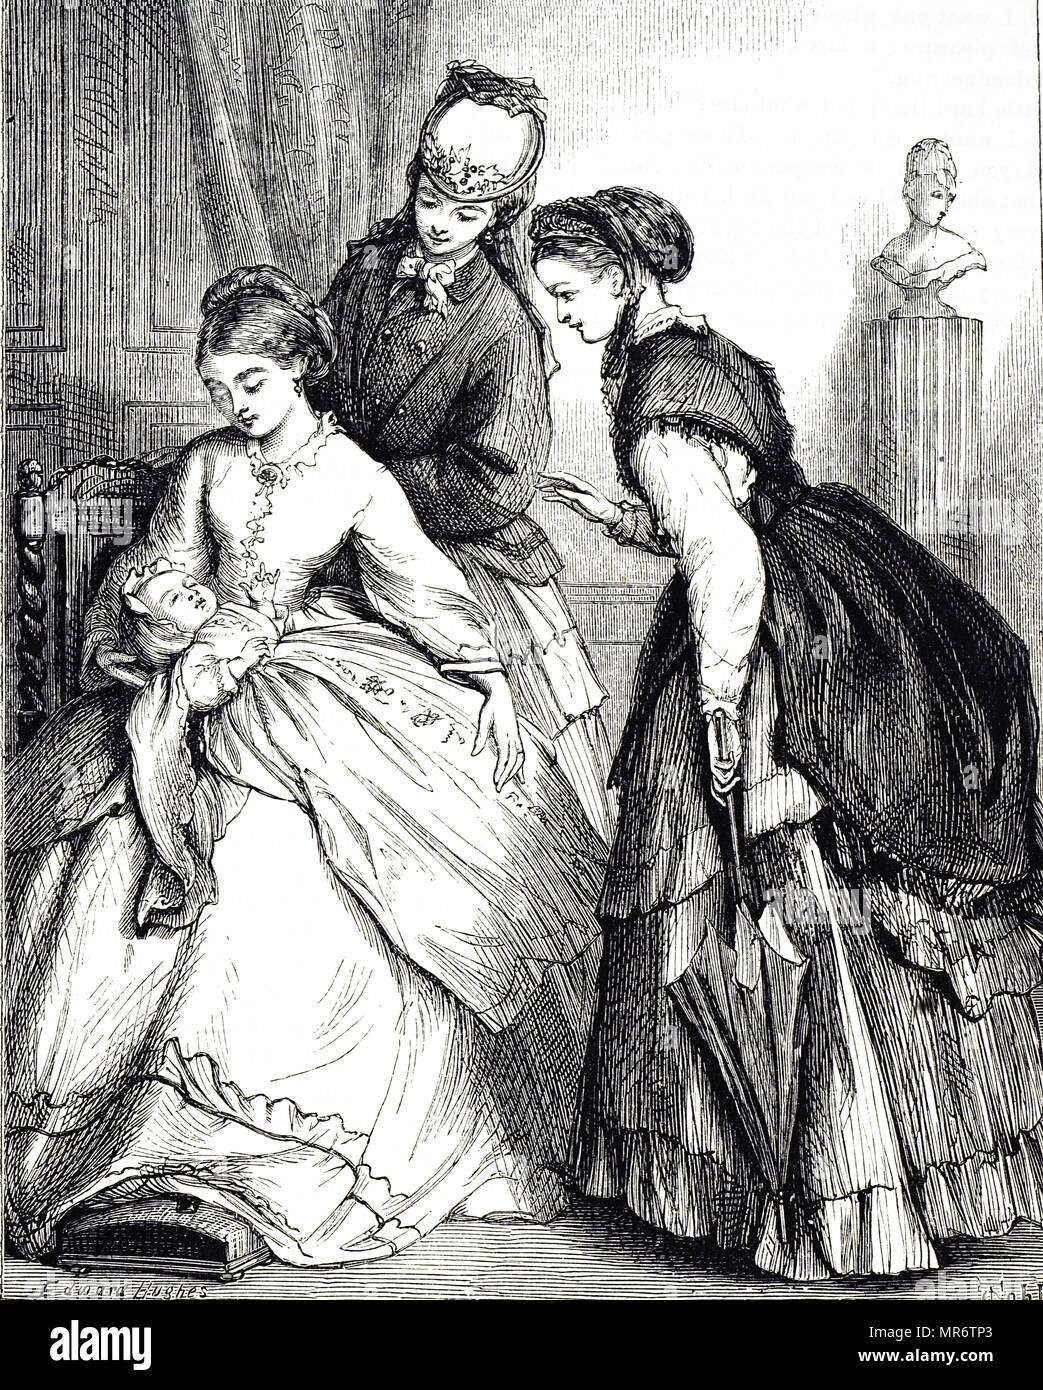 Engraving depicting a new-born being shown off to his aunts. Illustrated by Edward Hughes (1832-1908) a British artist. Dated 19th century - Stock Image